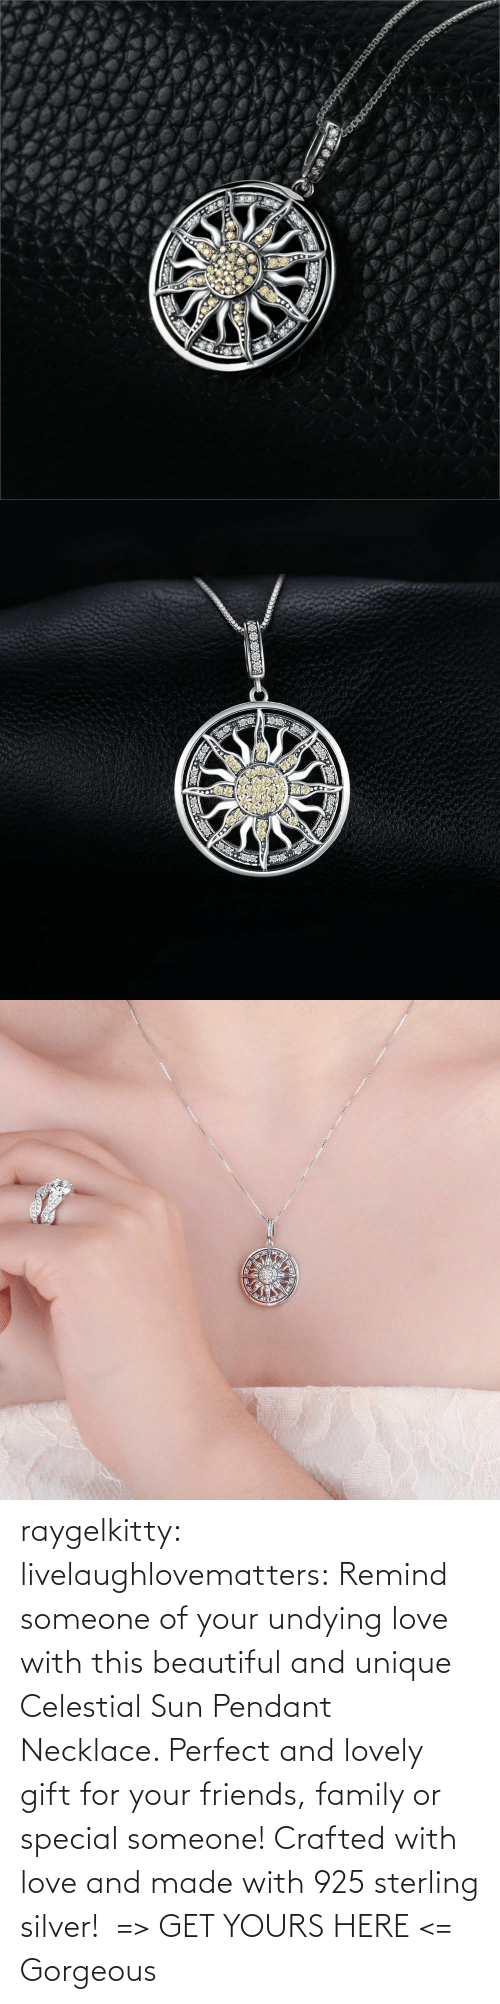 remind: raygelkitty:  livelaughlovematters: Remind someone of your undying love with this beautiful and unique Celestial Sun Pendant Necklace. Perfect and lovely gift for your friends, family or special someone! Crafted with love and made with 925 sterling silver!  => GET YOURS HERE <=    Gorgeous